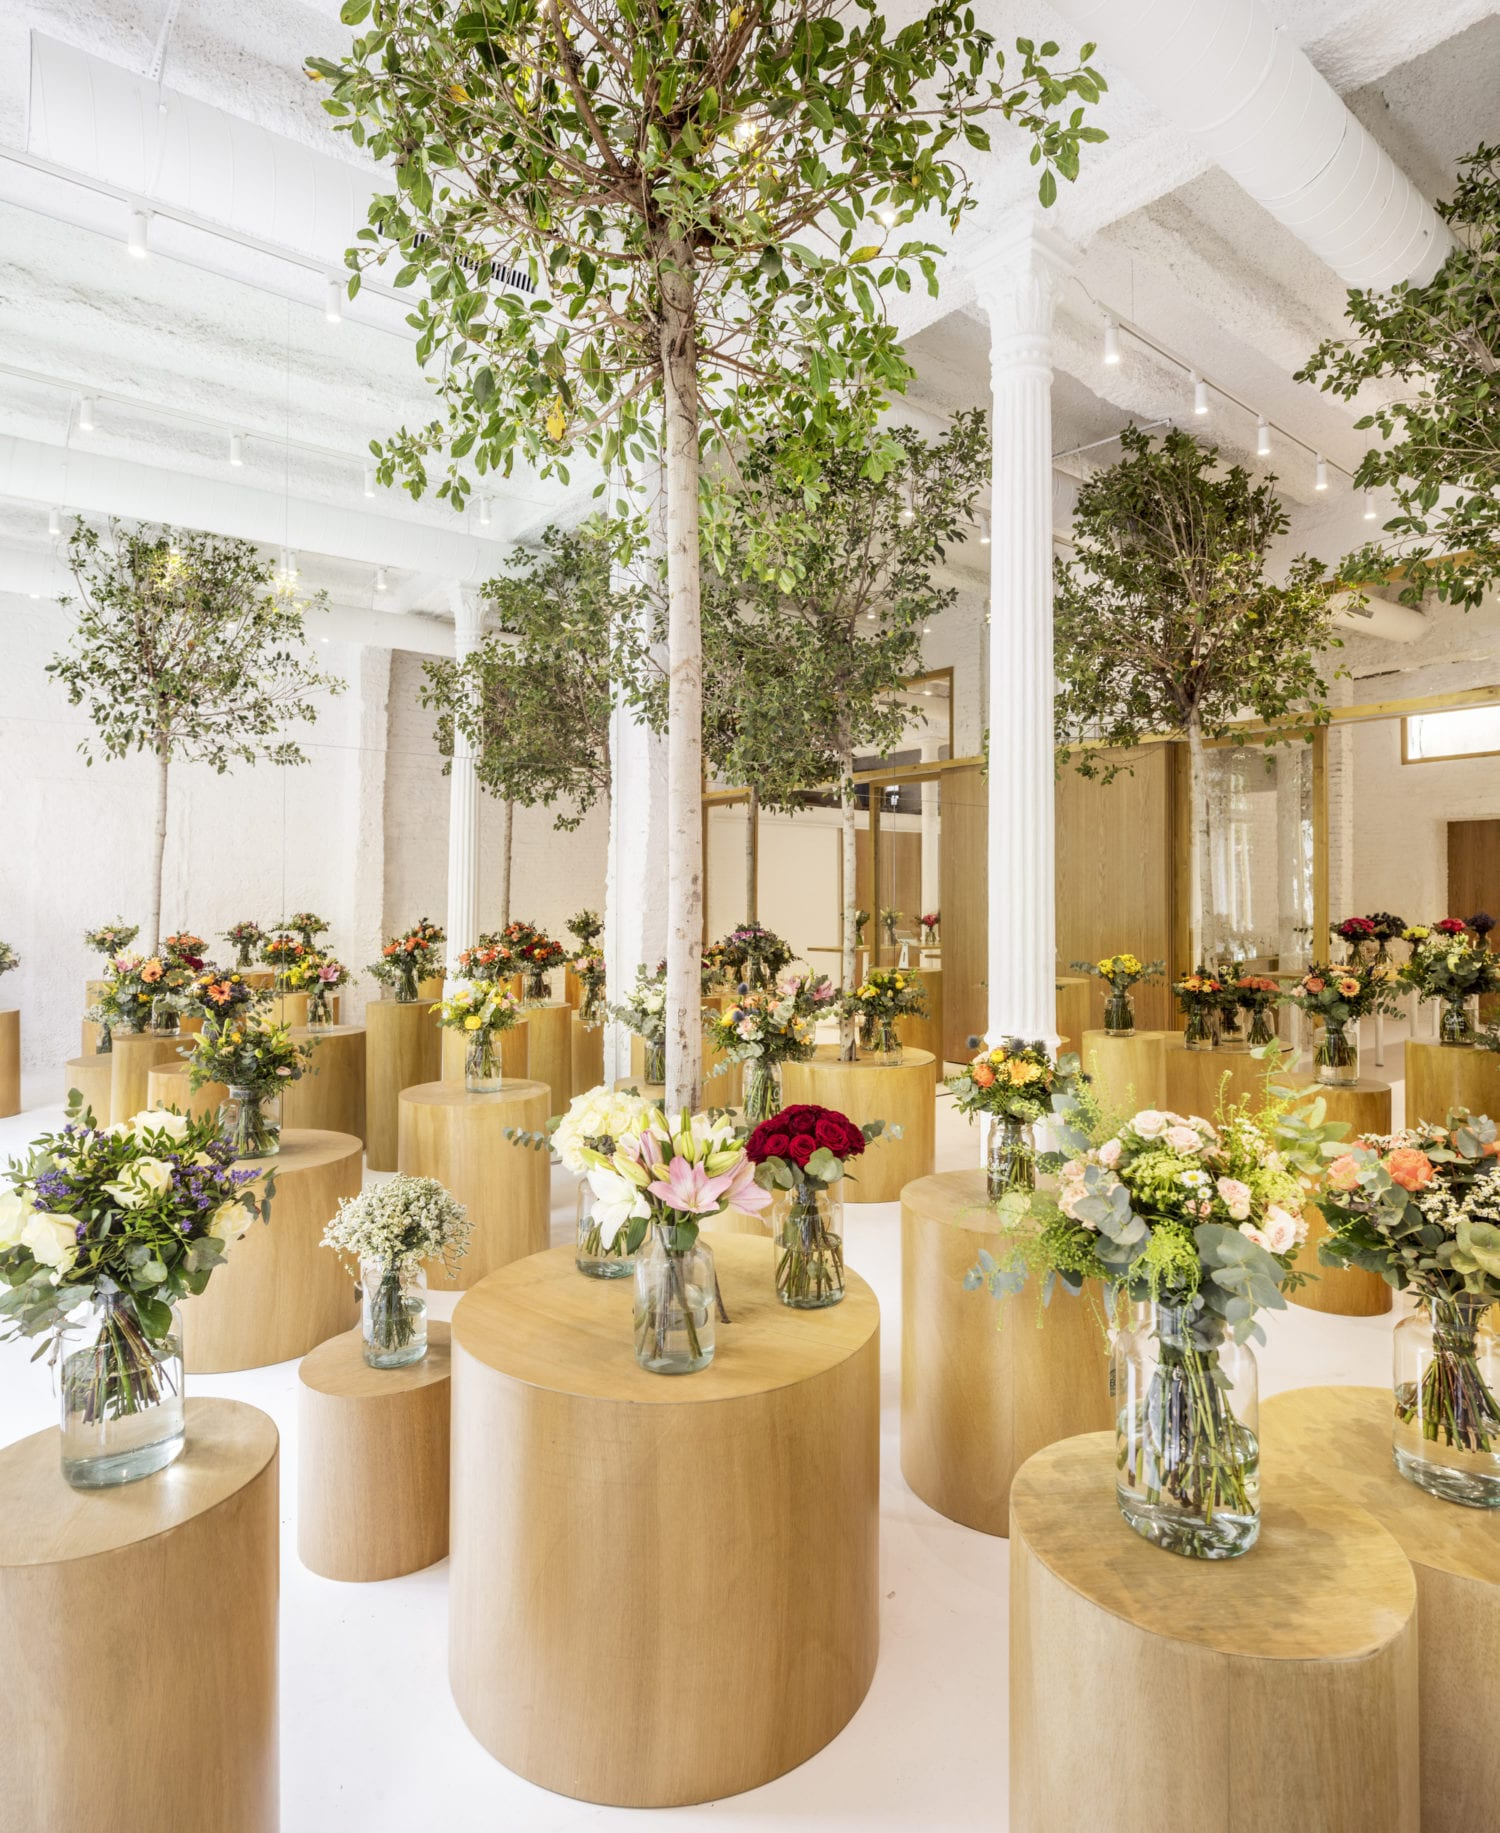 Colvin Florist in Barcelona by Roman Izquierdo Bouldstridge | Yellowtrace